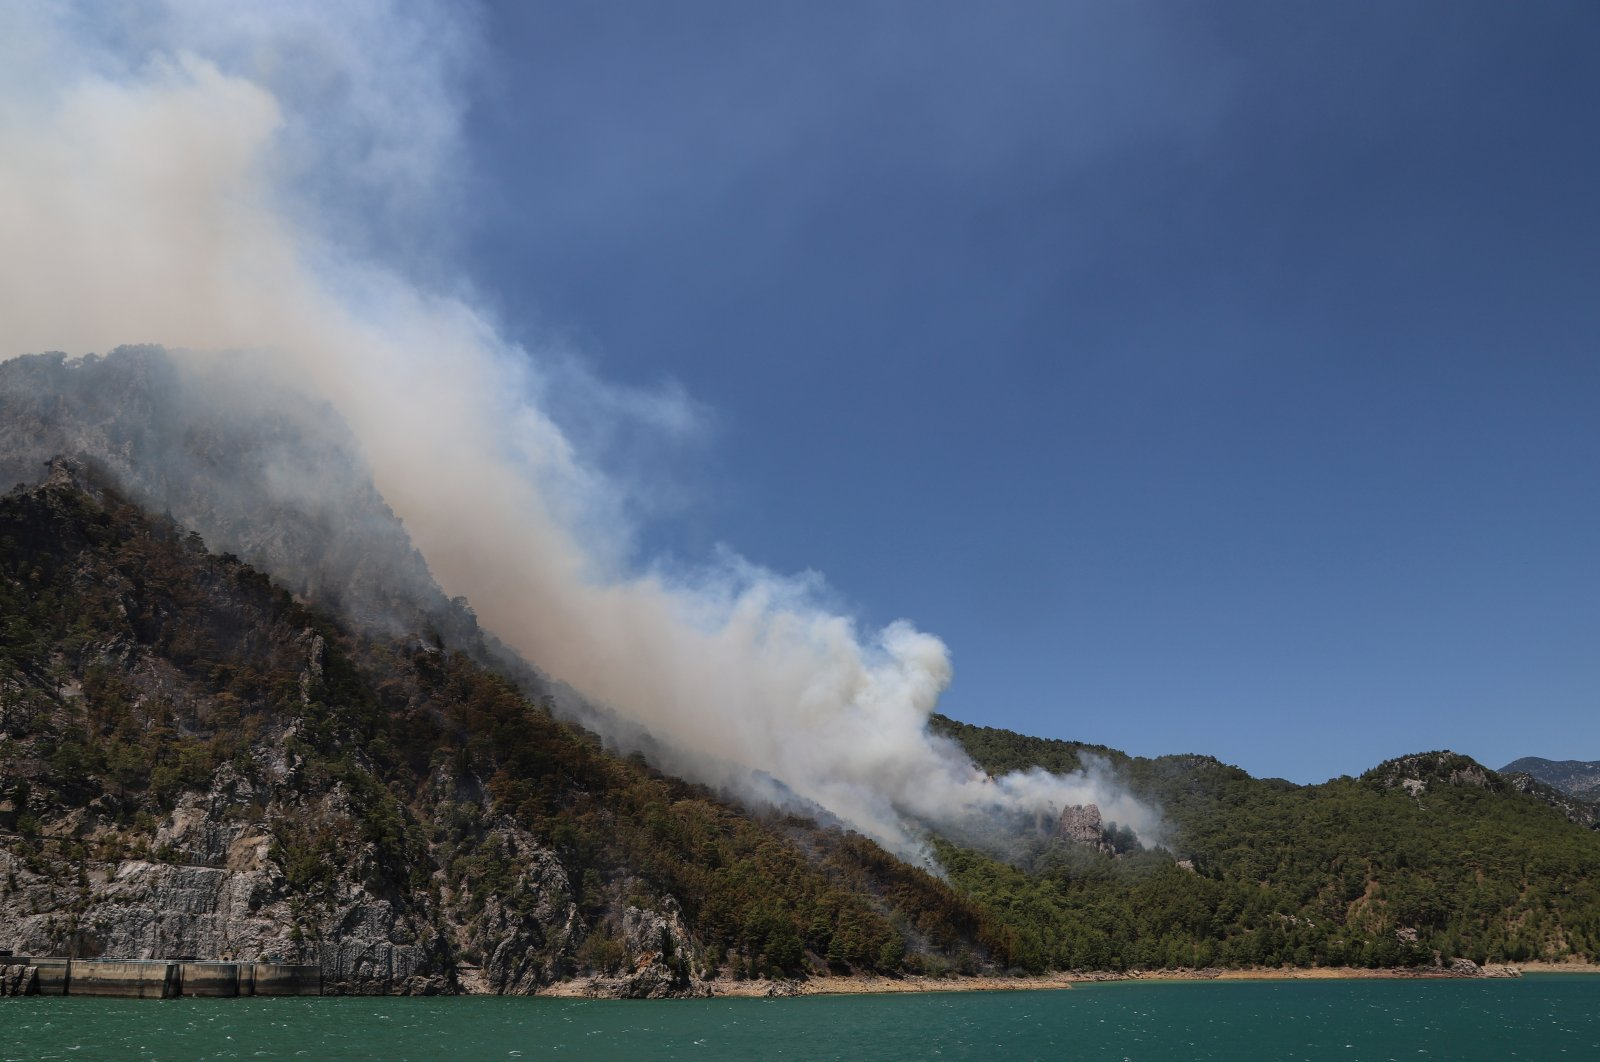 A forest fire burns near the town of Manavgat, east of the resort city of Antalya, Turkey, July 29, 2021 (Reuters Photo)